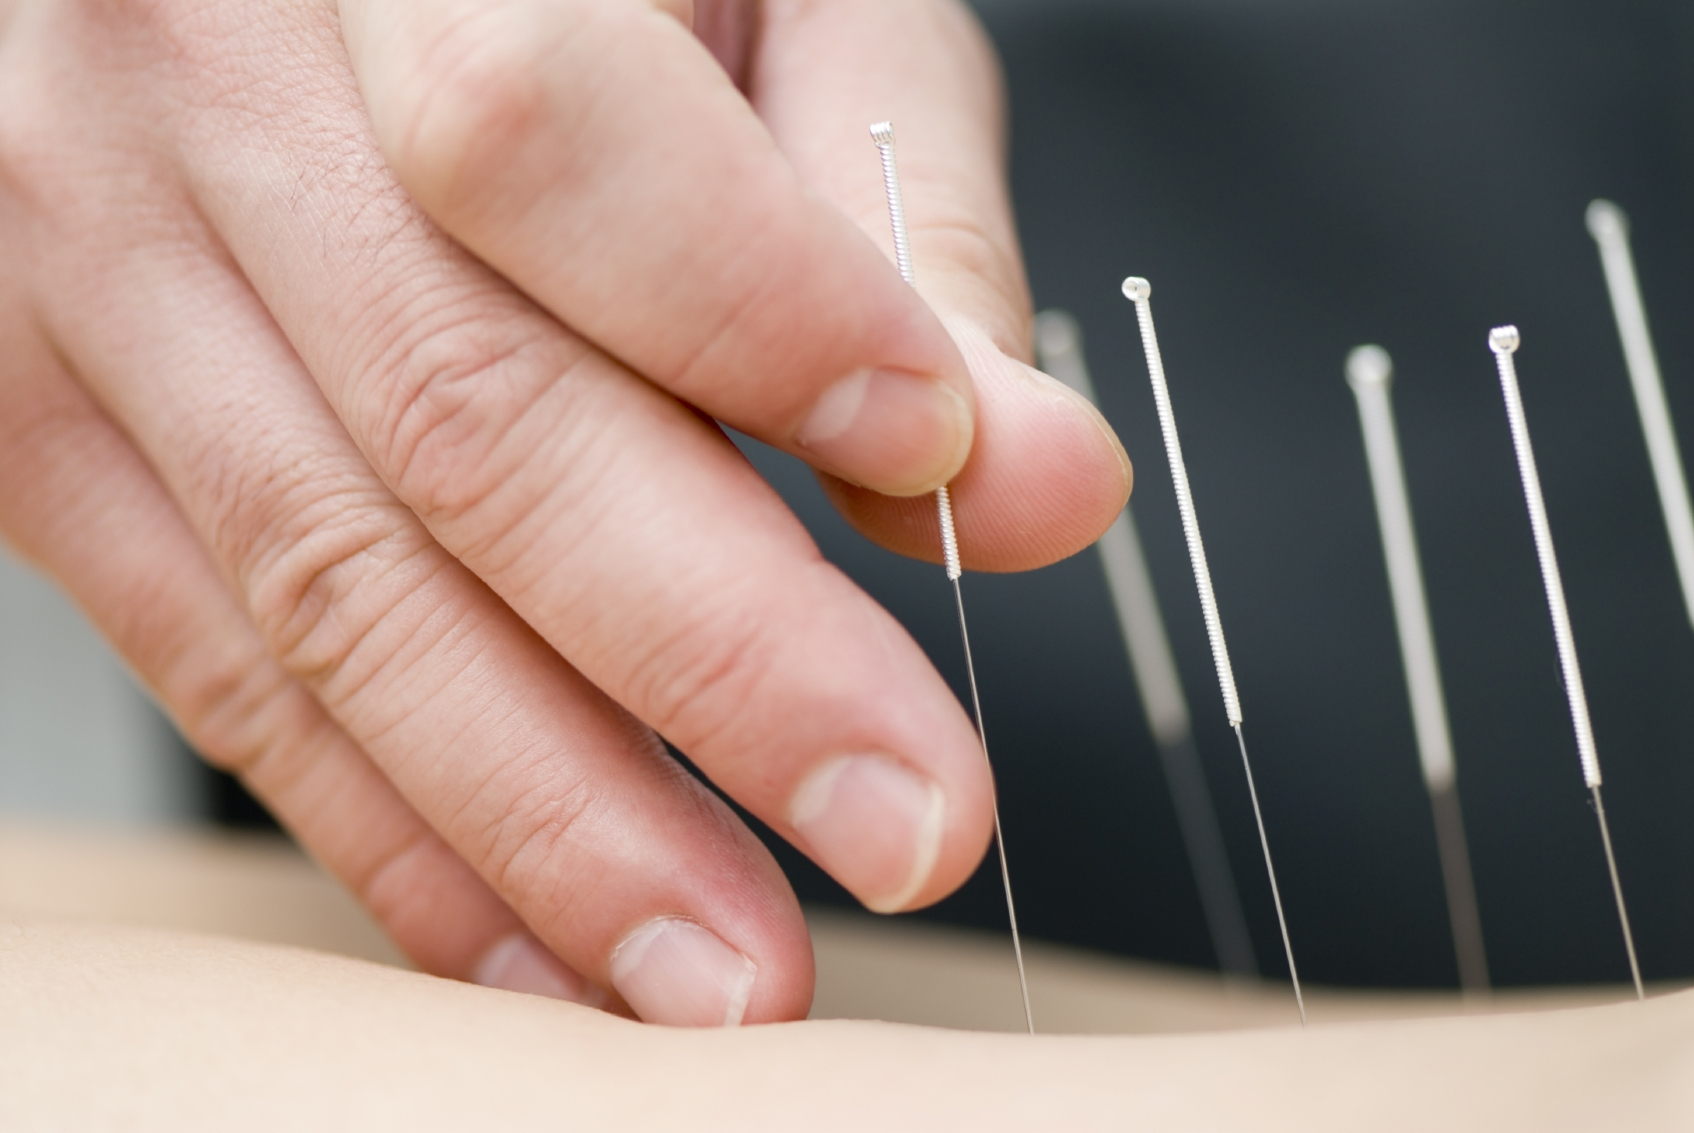 iStock_000004479493Medium1-dry-needling-multiple-needles1.jpg